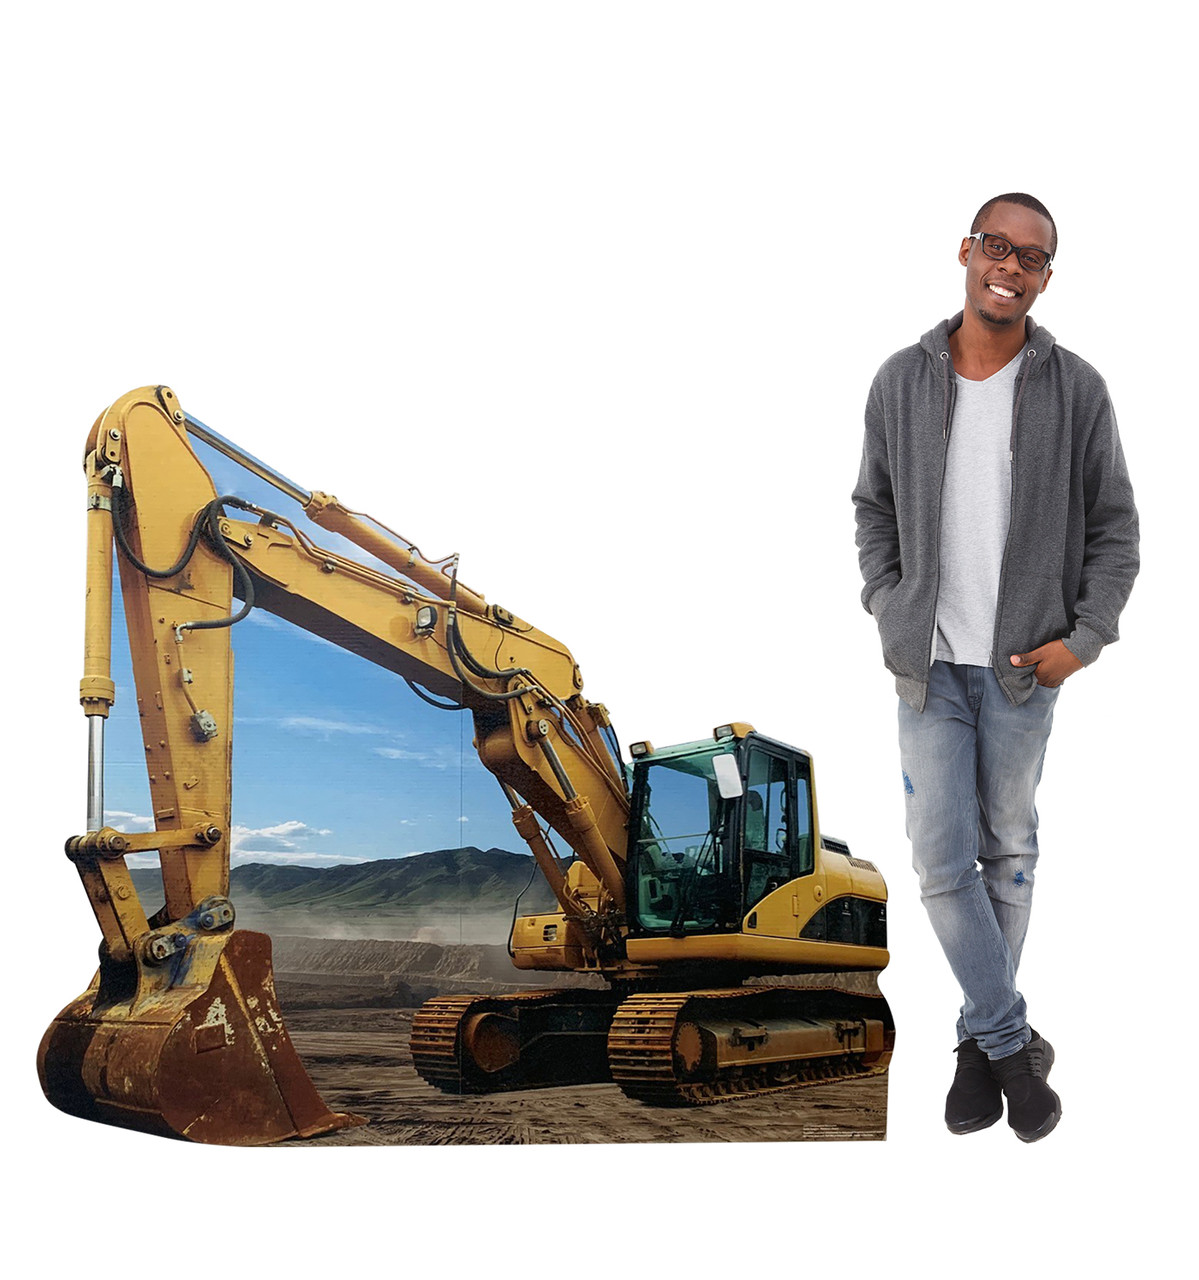 Life-size cardboard standee of a Construction Excavator Standee with model.